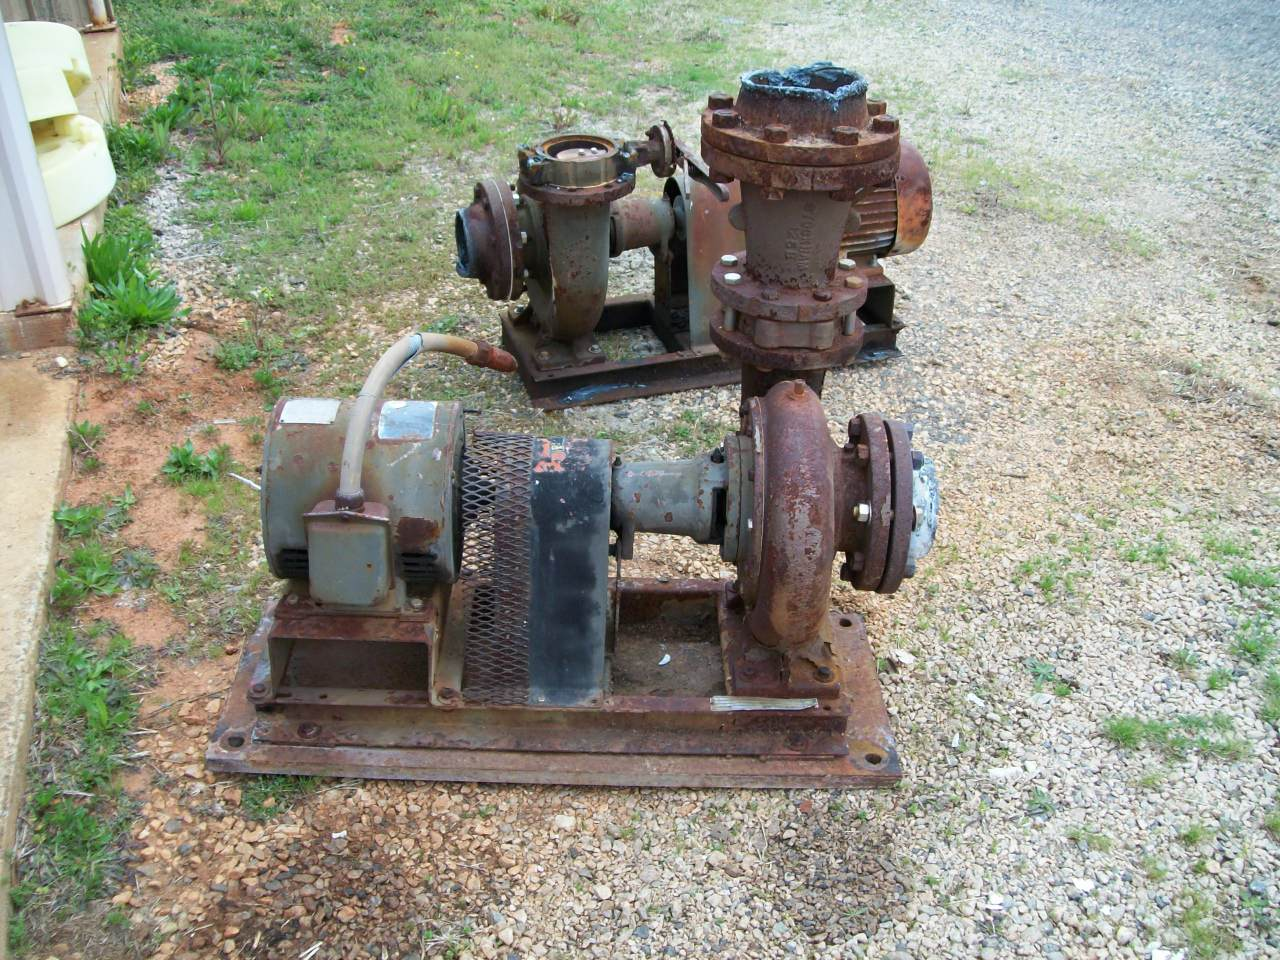 BELL & GOSSETT modle 4BC pump Powered by 10hp Century Electric motor, NB#-6-358362-01, Frame-S215, type-SC, amps-24.4/12.2, 1750 rpm, 230/460